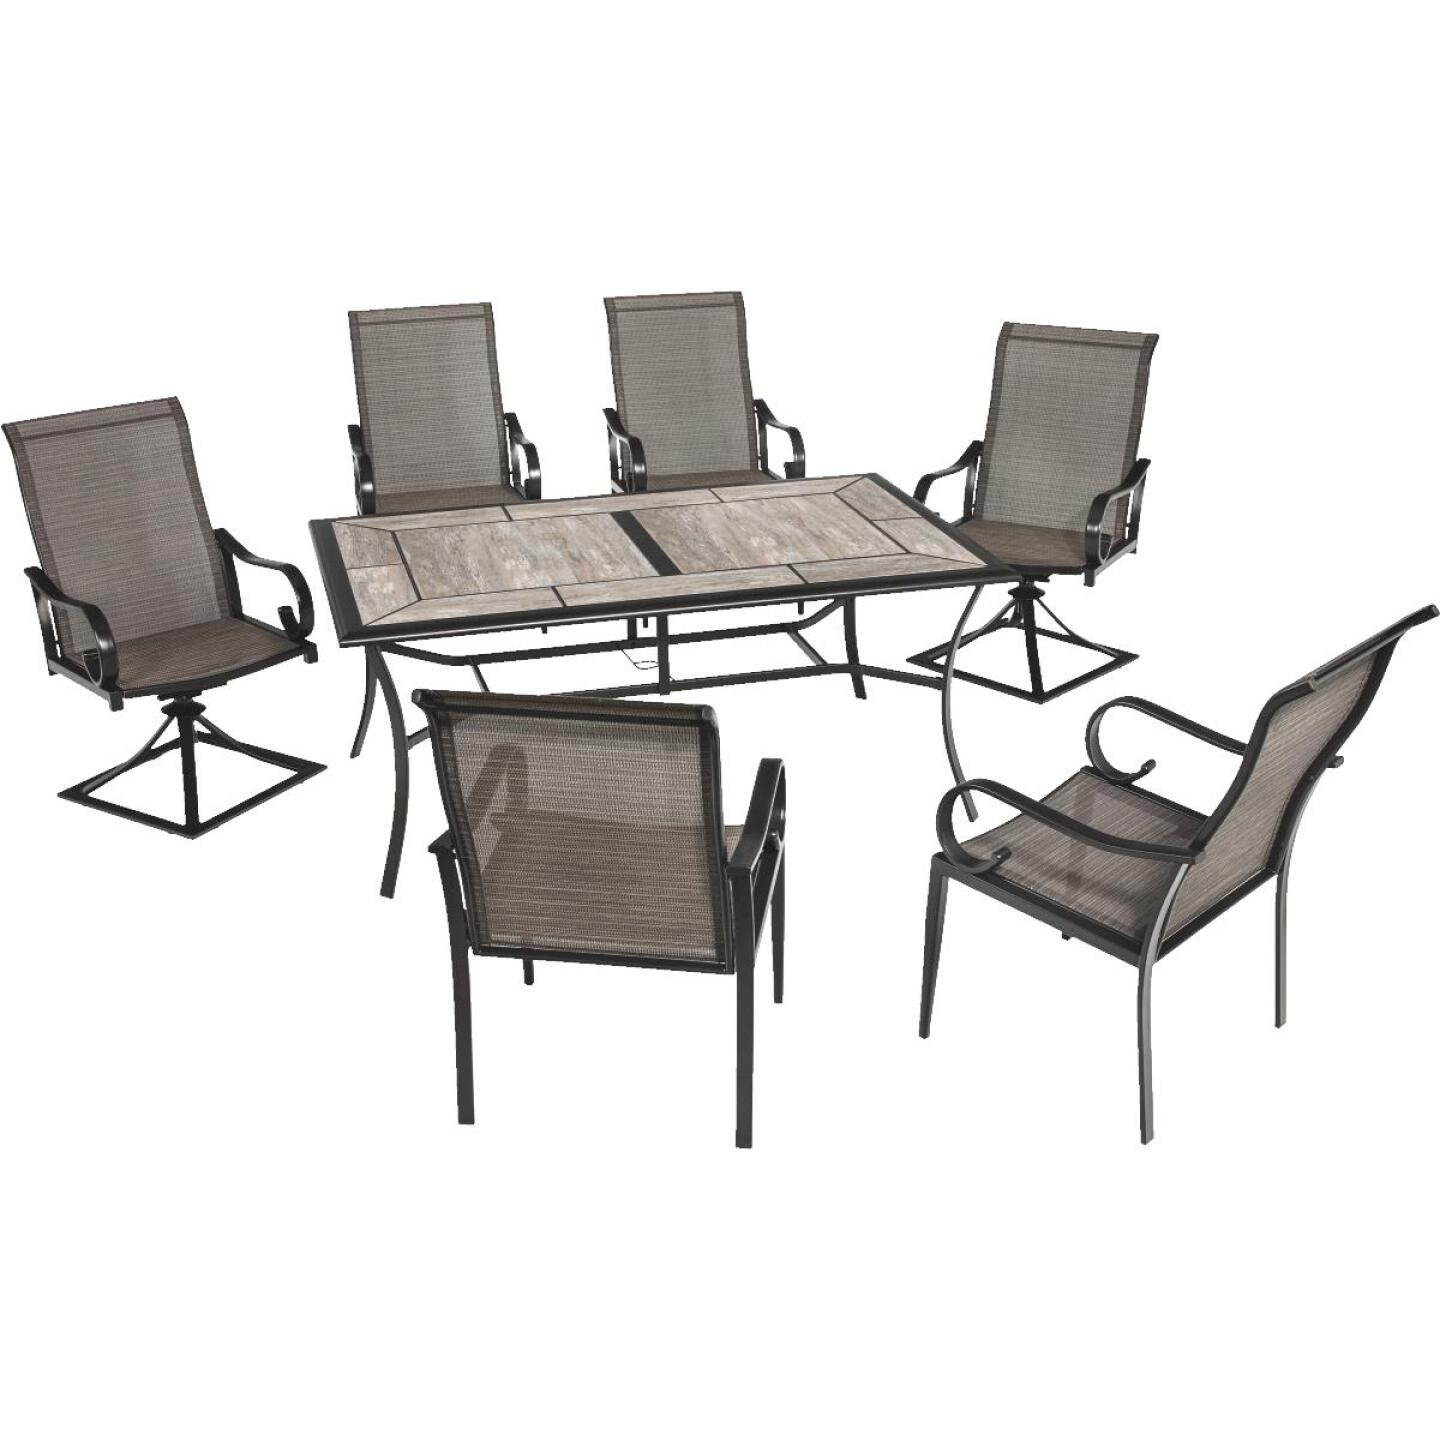 Outdoor Expressions Berkshire 7-Piece Dining Set Image 245